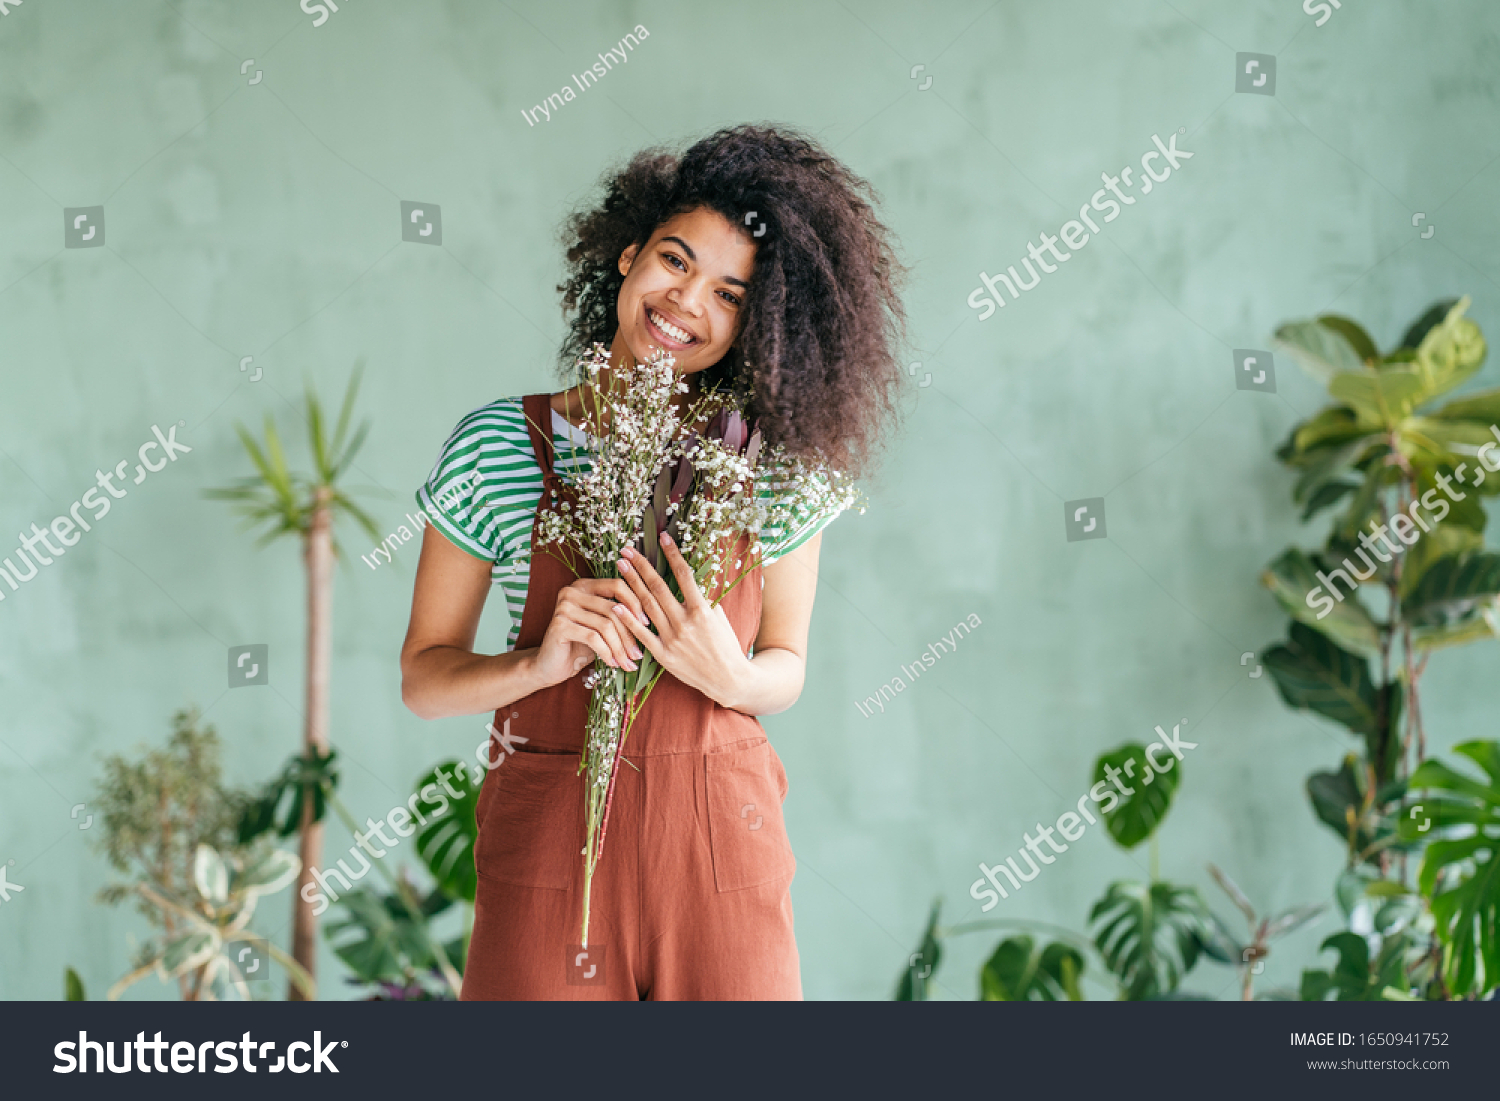 Young woman cultivating home plants.Small business.Sensual mixed race female florist with flowers in hands against background of indoor plants. Life lover, zero waste, inspiration, summer mood concept #1650941752